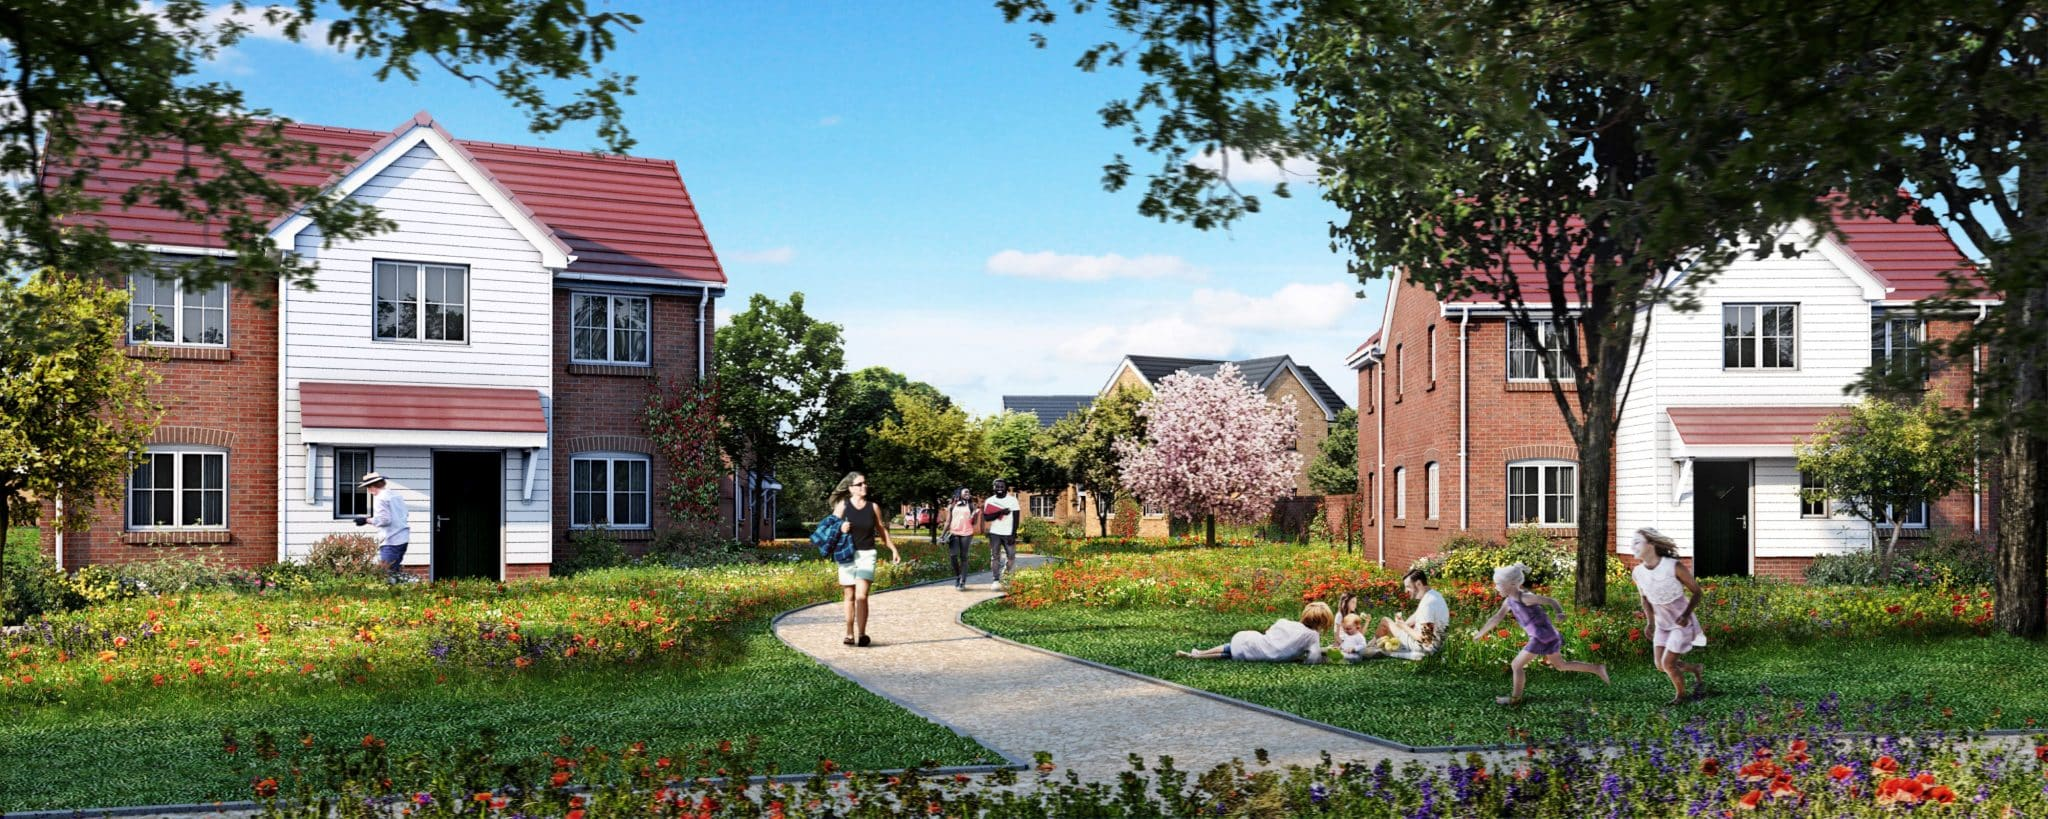 Bellway to build 330 homes at Marham Park, Bury St Edmunds